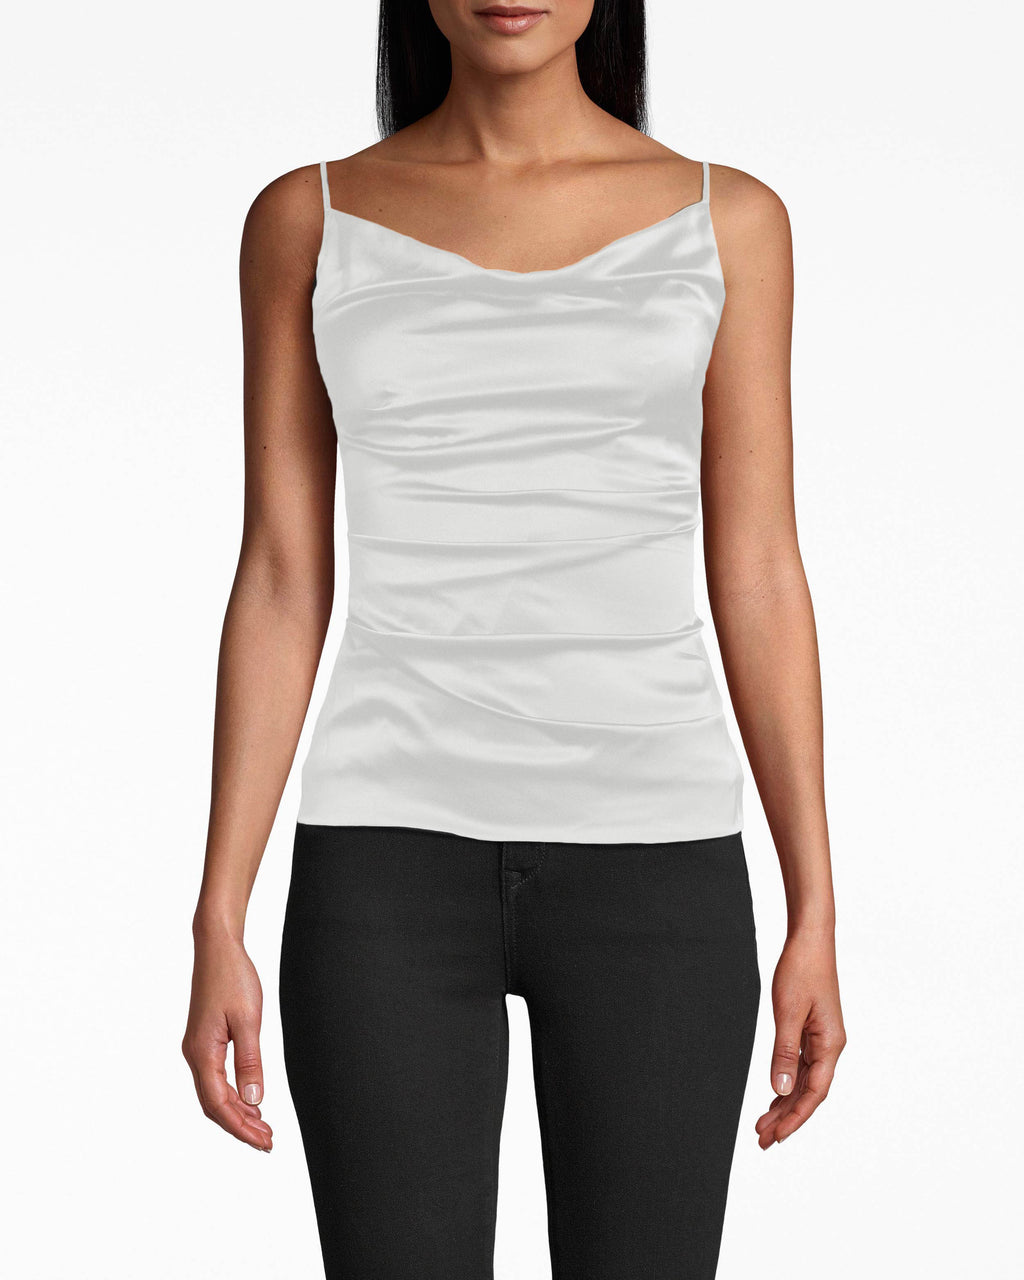 AS10213 - SILK CARLY COWL NECK TOP - tops - blouses - The fabric gathers accentuate your waist on this silk cowl neck camisole, which is designed with adjustable spaghetti straps. Exposed back zipper for closure.